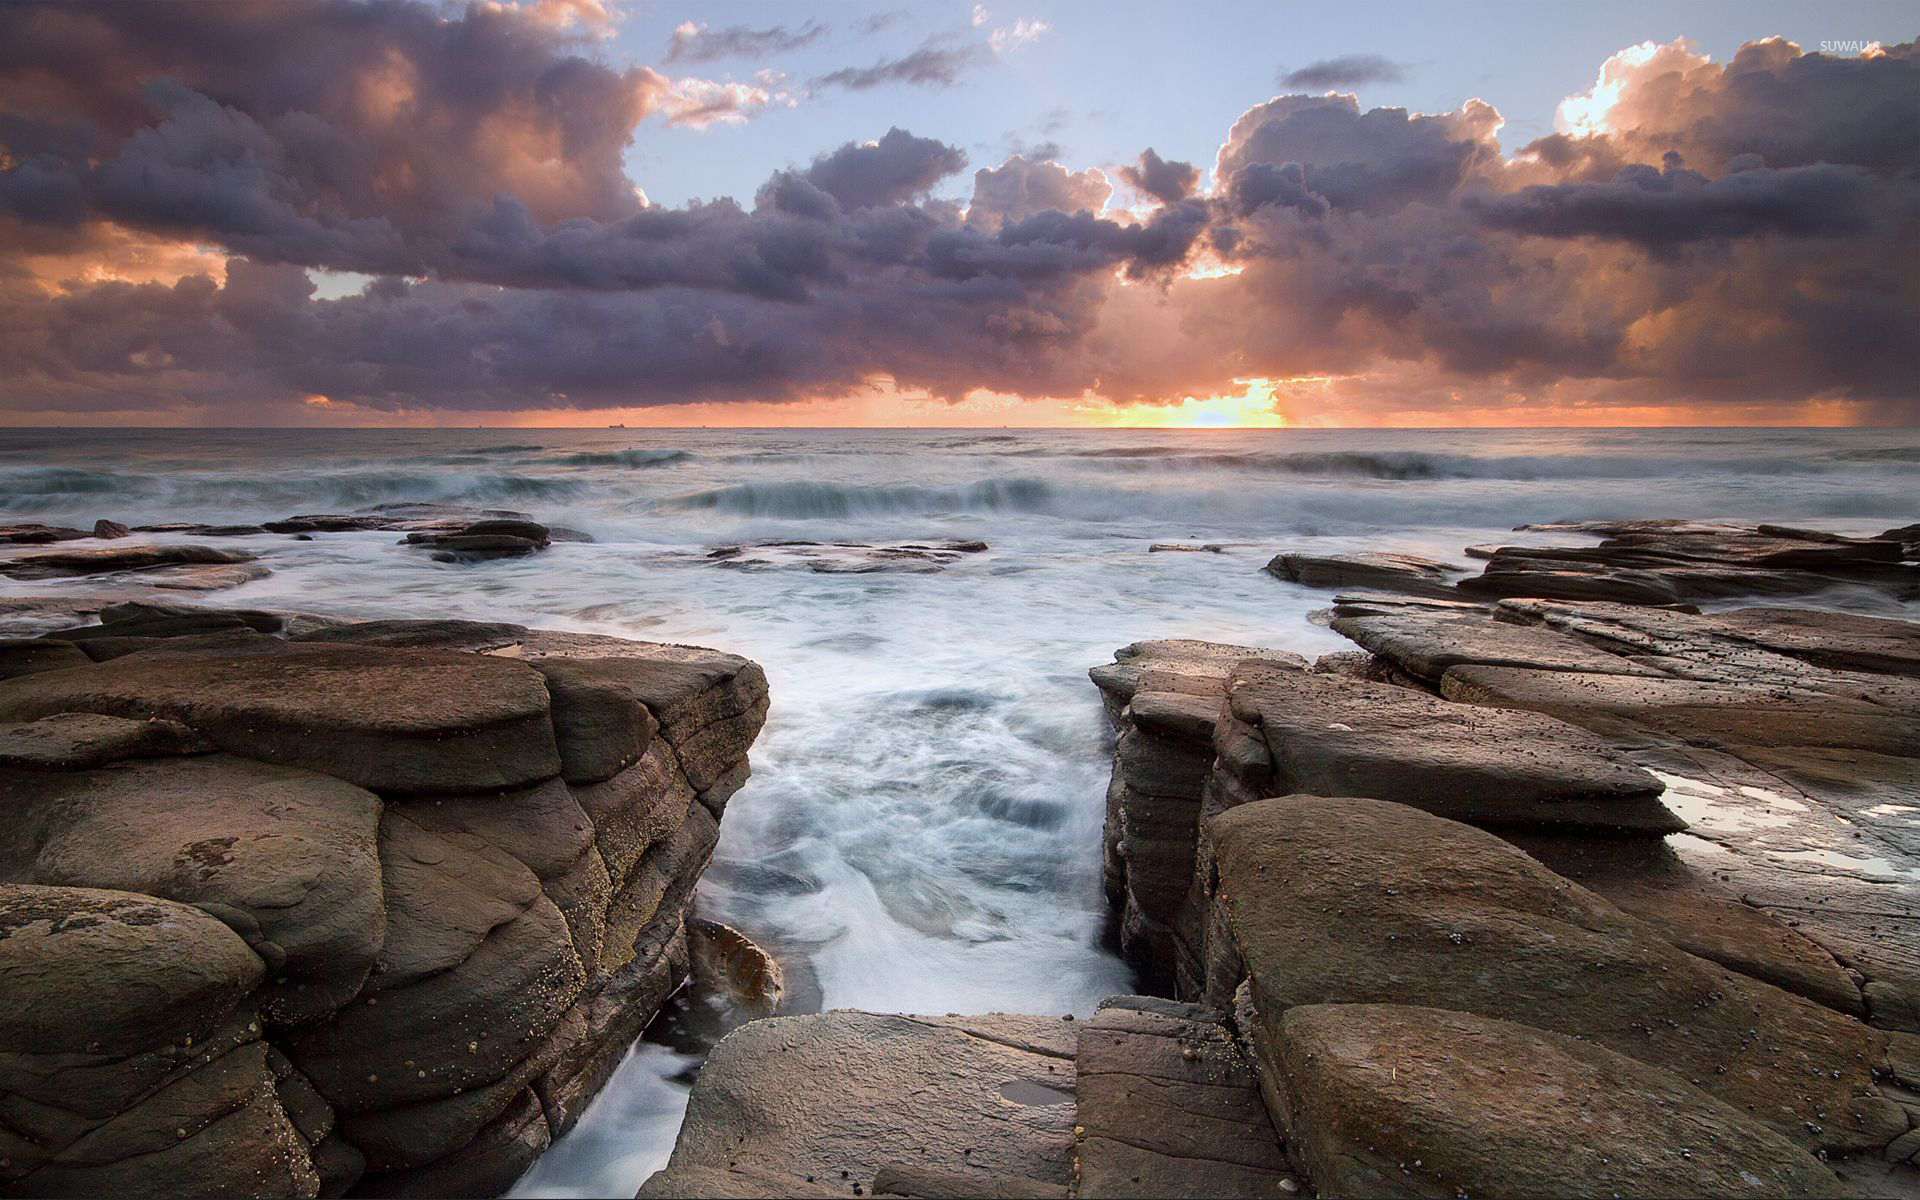 waves rushing to the rocky shore wallpaper - beach wallpapers - #53807